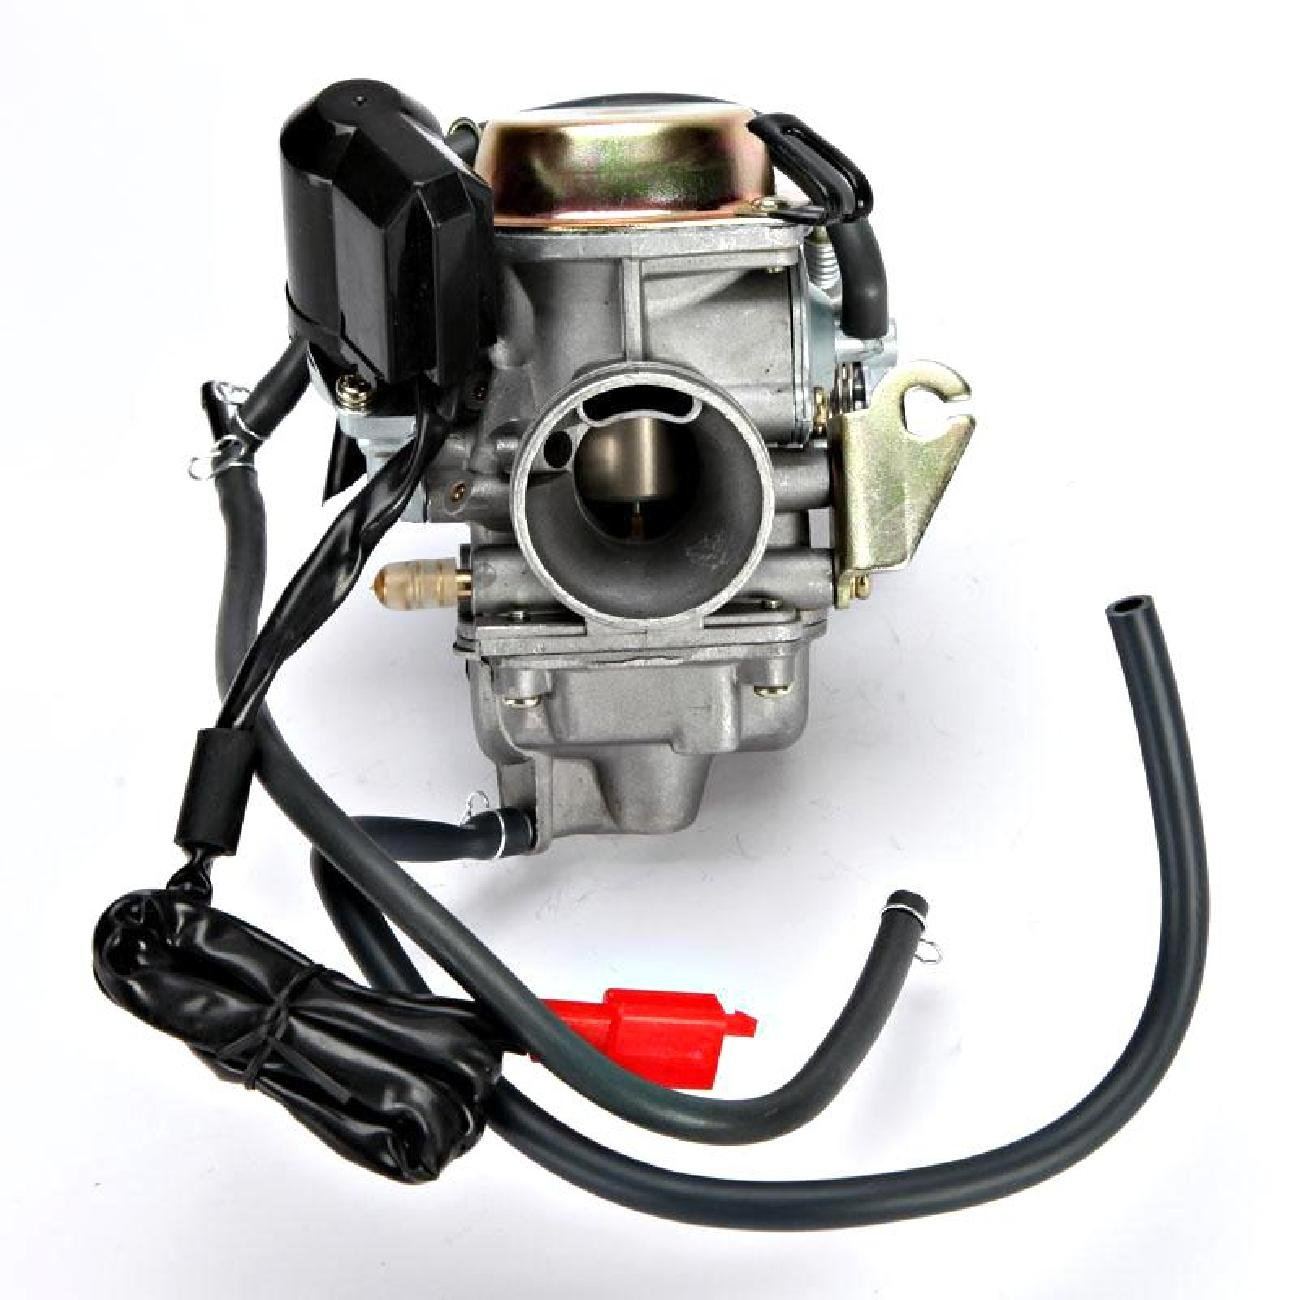 INNOGLOW 1PC Motorcycle Carburetor 150cc Scooter Roketa SUNL Go Kart FREE Filter GY6 GY6 Carb 150cc PD24